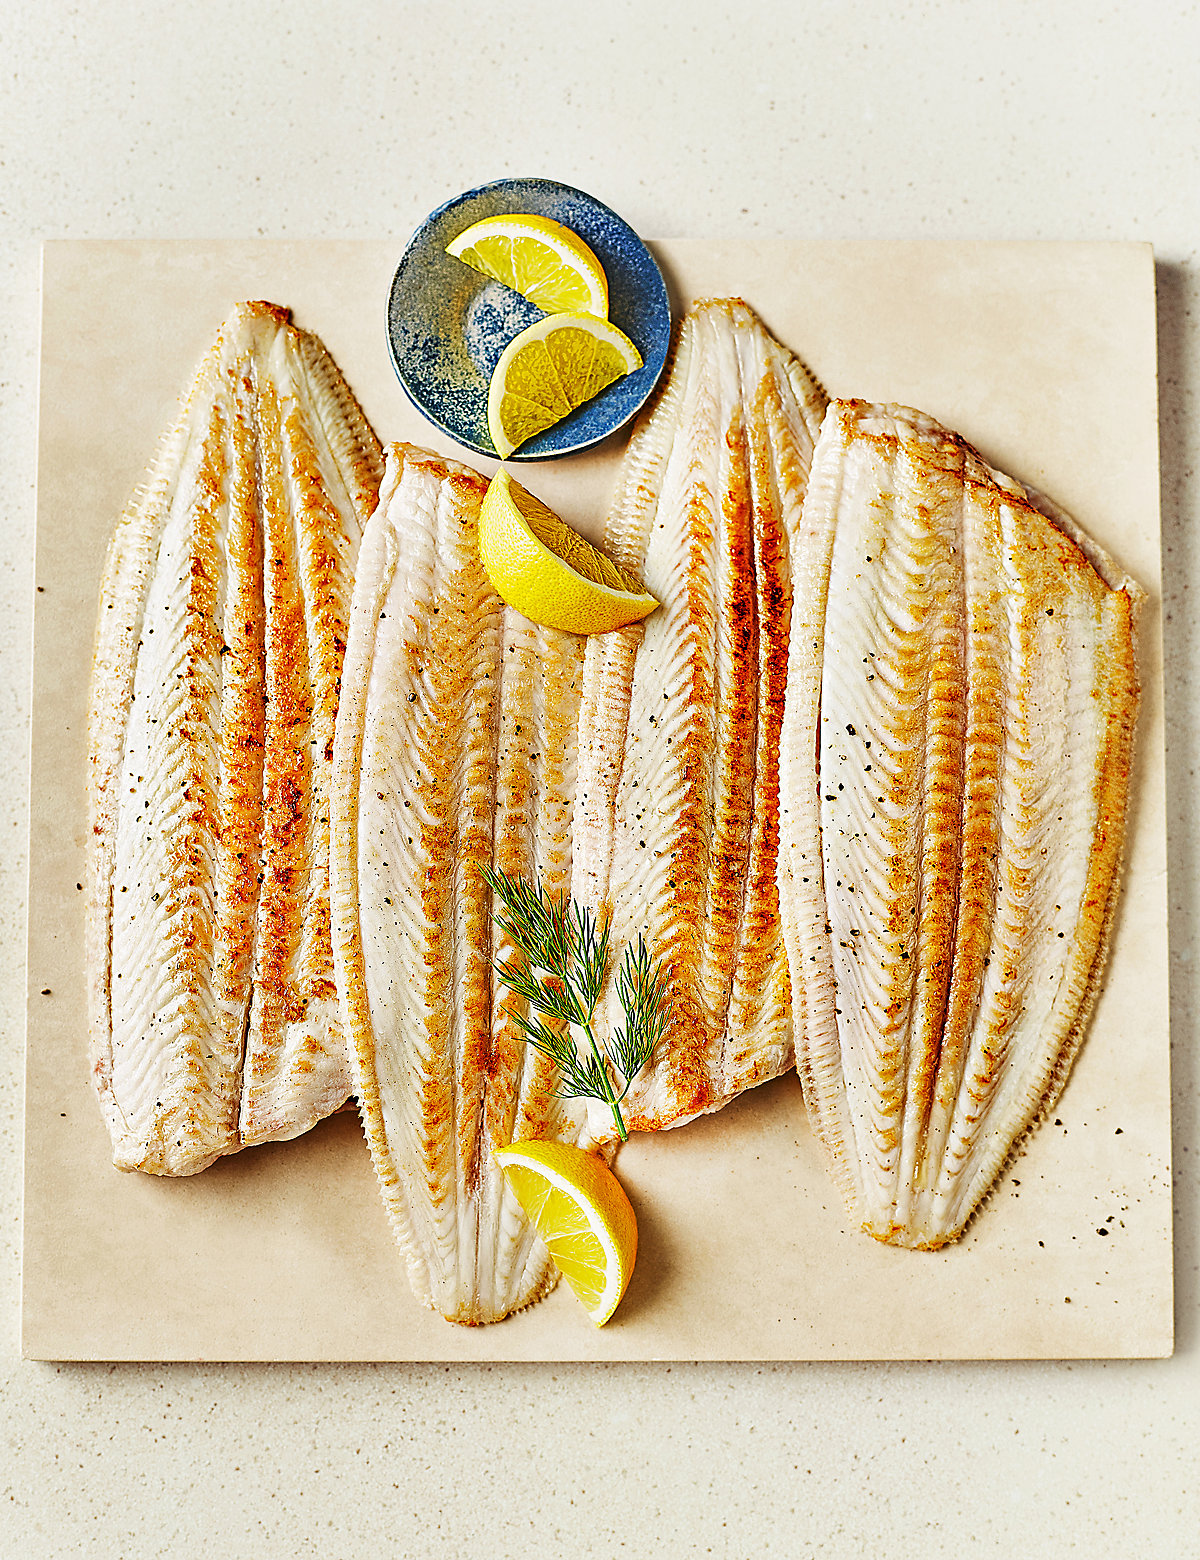 4 Dover Sole